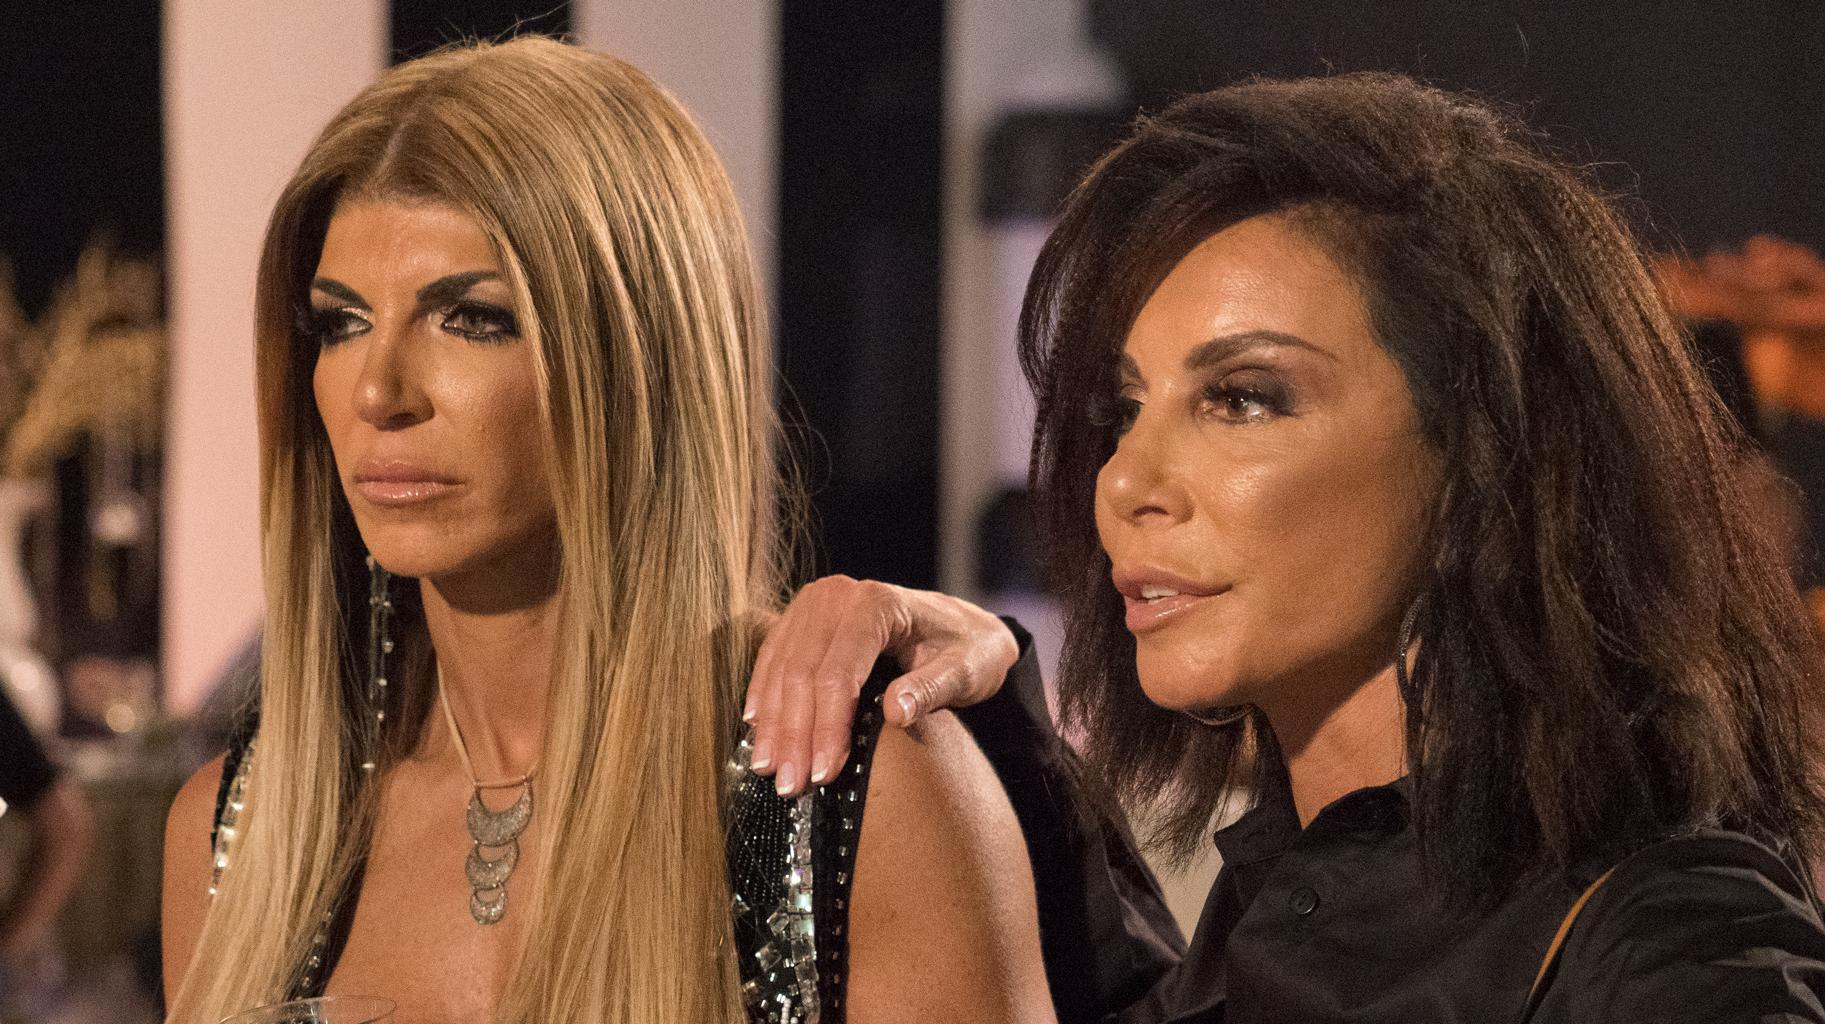 Teresa Giudice And Danielle Staub: Inside Their Discussion At The RHONJ Reunion Following Their Drama - Are They Friends Again?